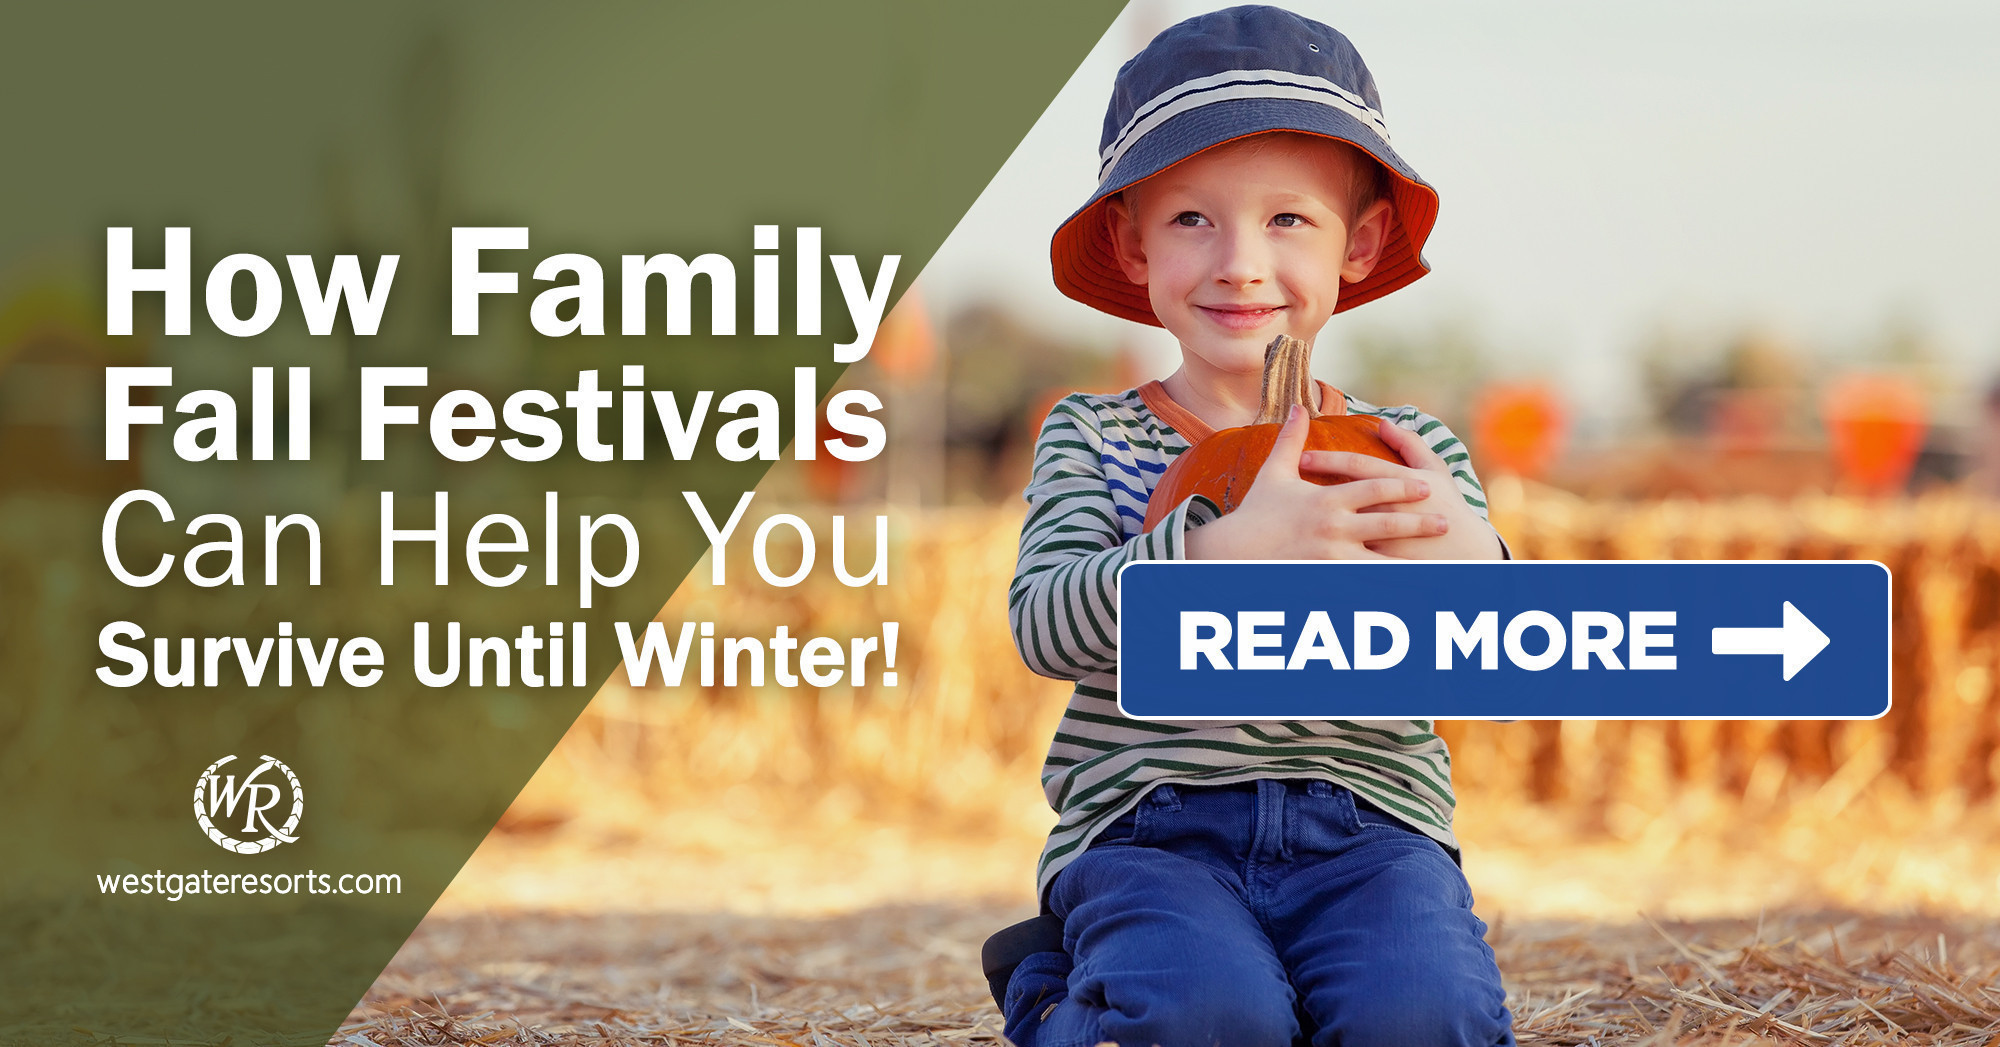 How Family Fall Festivals In NYC Can Help You Survive Until Winter! | Fall Festivals in New York City | Westgate NYC